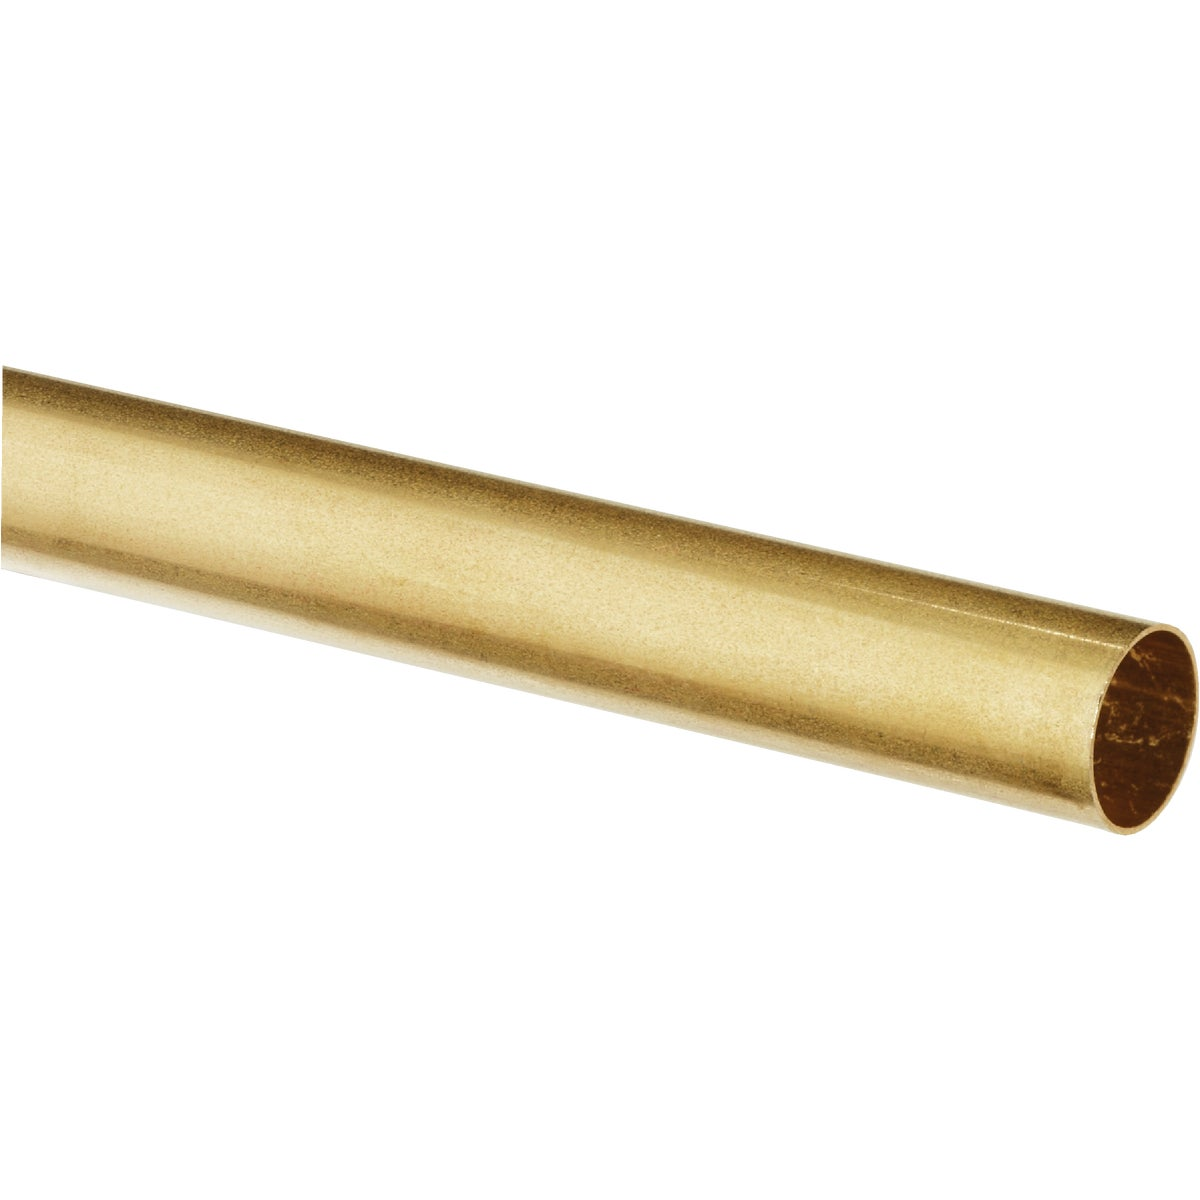 .014X19/32X12 BR RD TUBE - 8142 by K&s Precision Metals